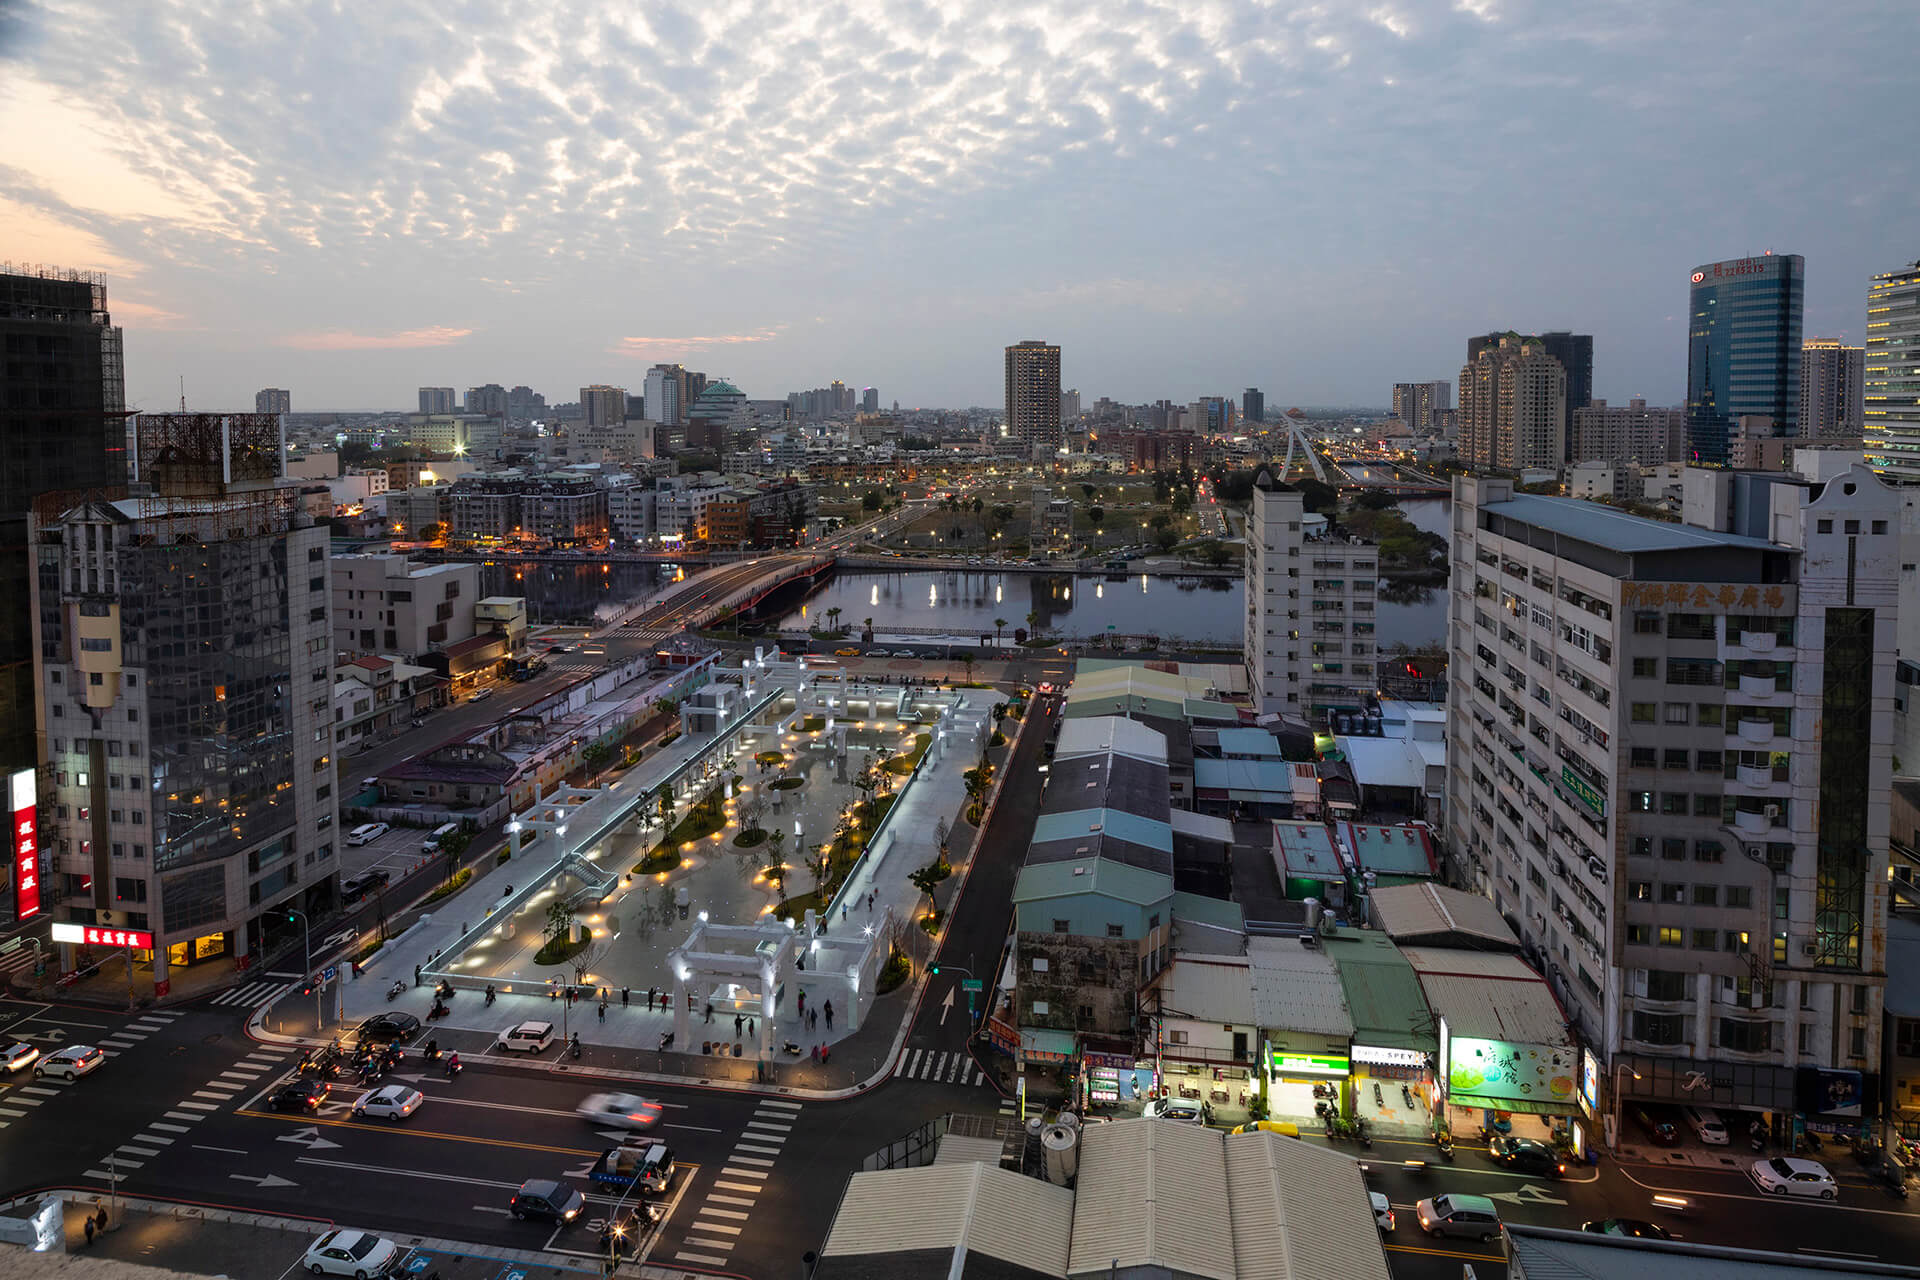 The new public square forms a fresh landscape strategy, unifying the former China Town mall's site and a kilometre-long stretch of the city's Haian Road | MVRDV's Tainan Spring is an urban lagoon in Tainan, Taiwan | STIRworld